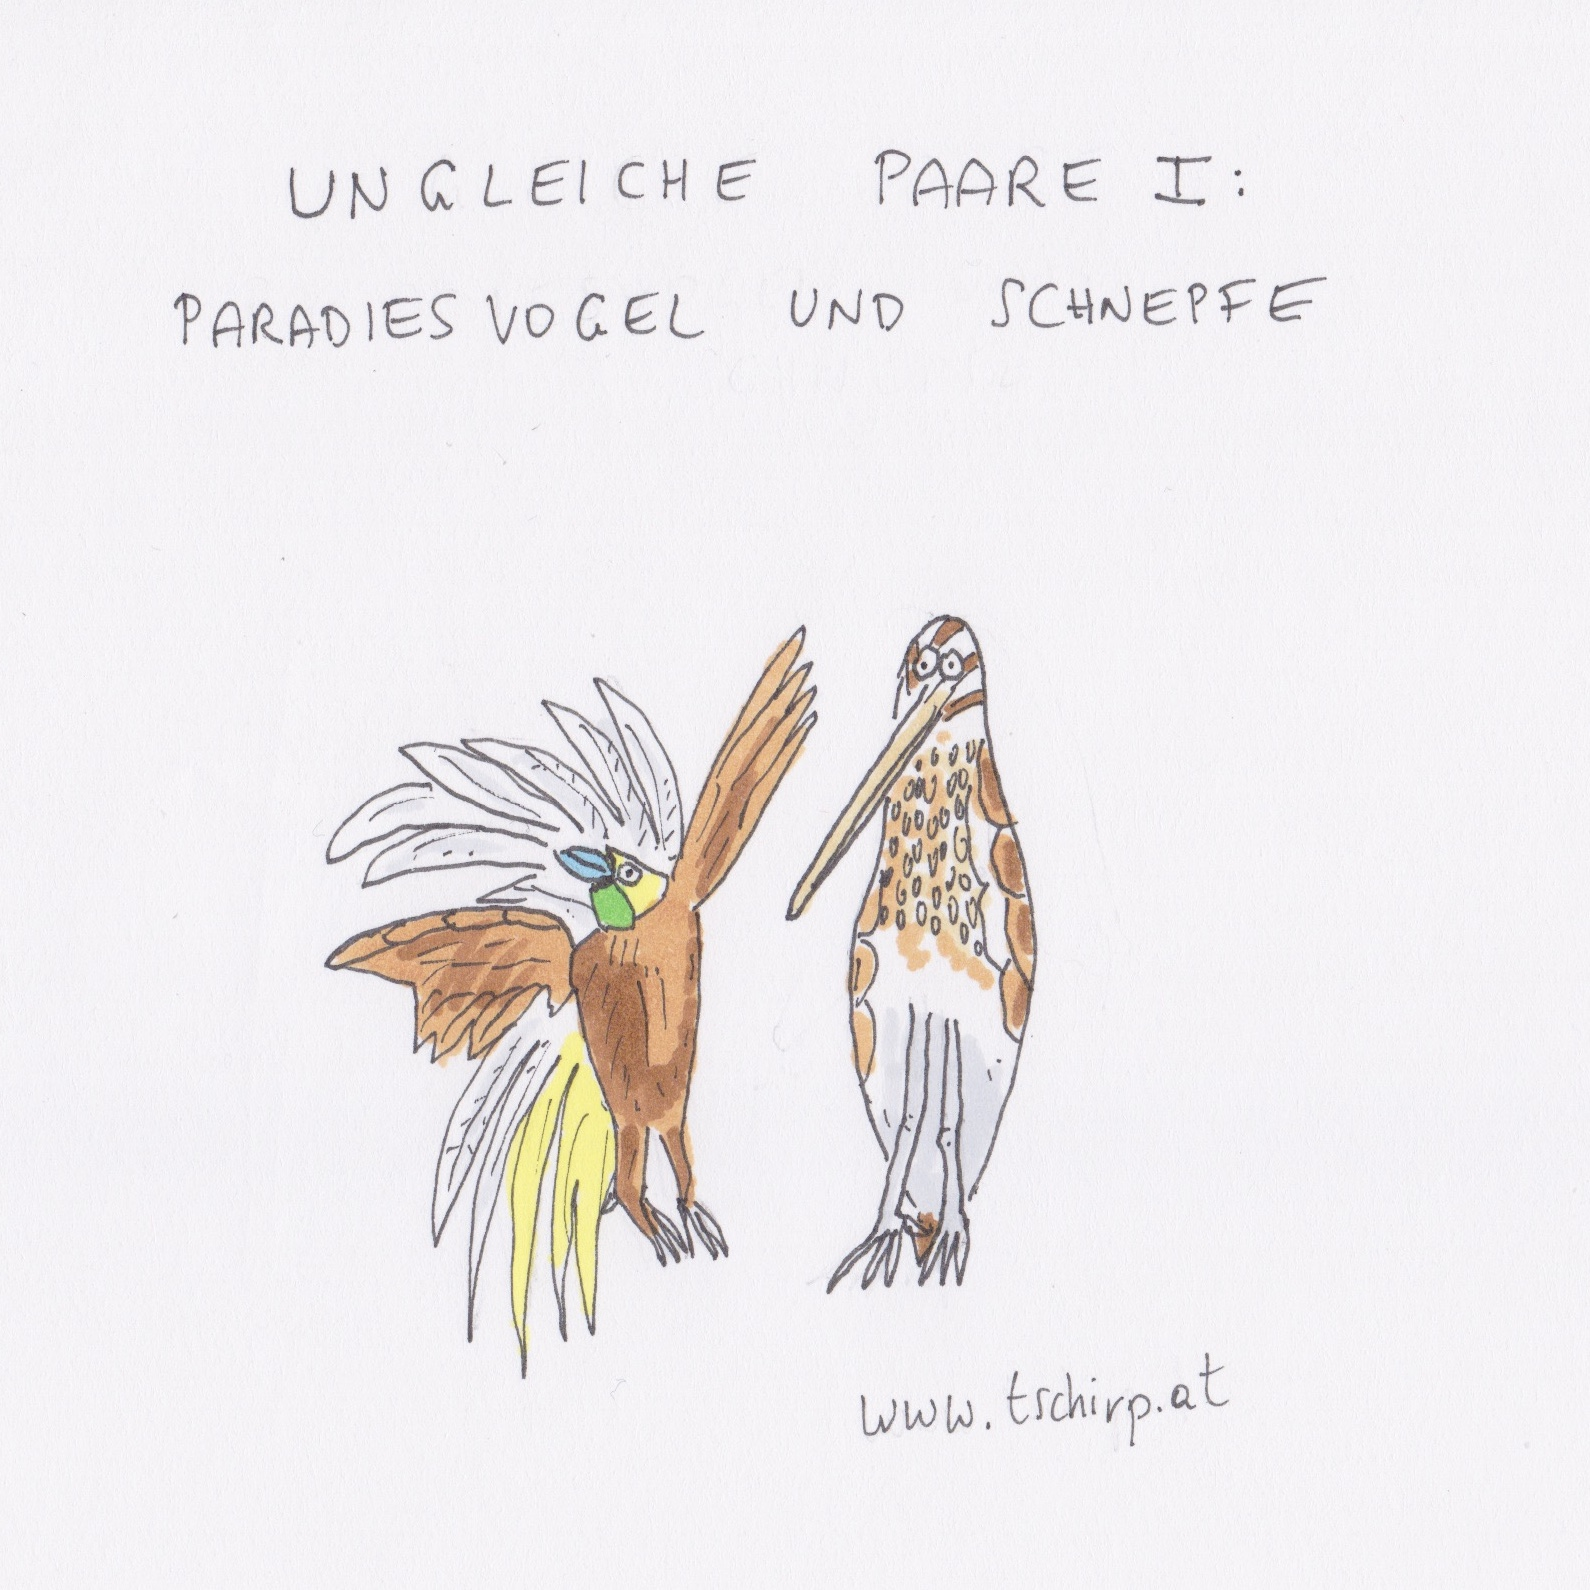 Hochzeit, Mai, Schnepfe, Paradiesvogel, Cartoon, Cartoons, Comic, Comics, Wellensittich